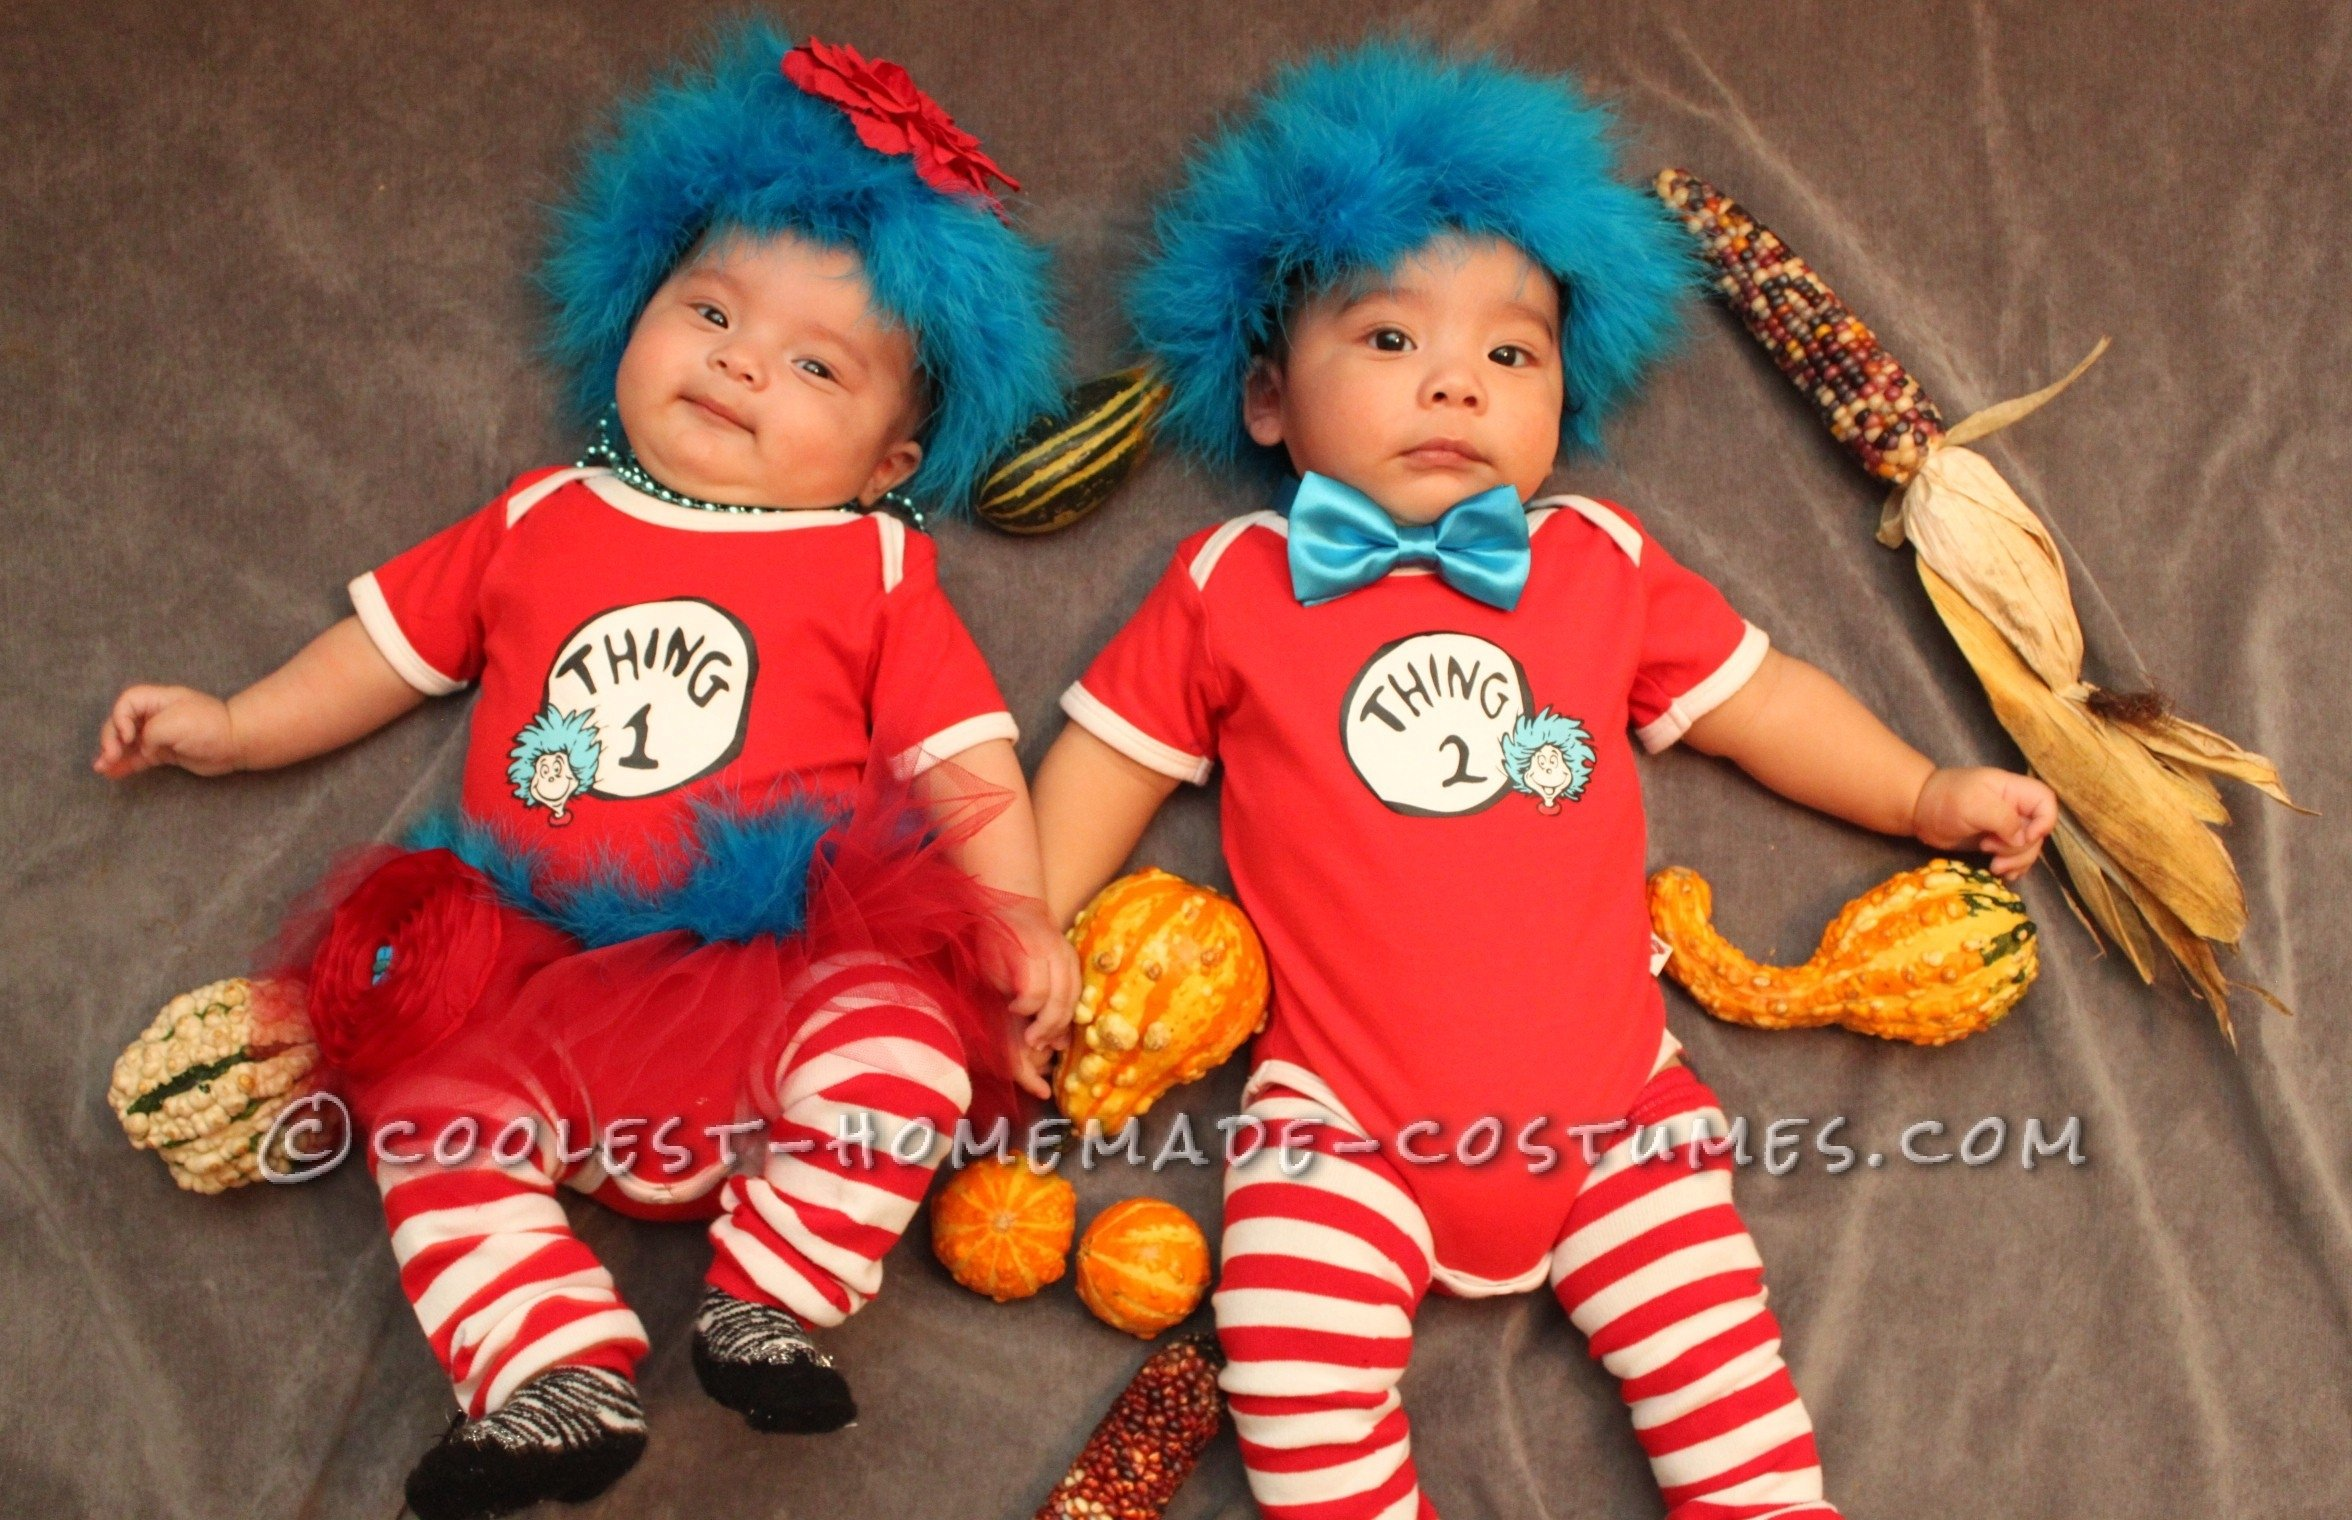 10 Unique Thing 1 And Thing 2 Costume Ideas two amazing homemade infant twin costumes for under 30 twin 1 and 2021